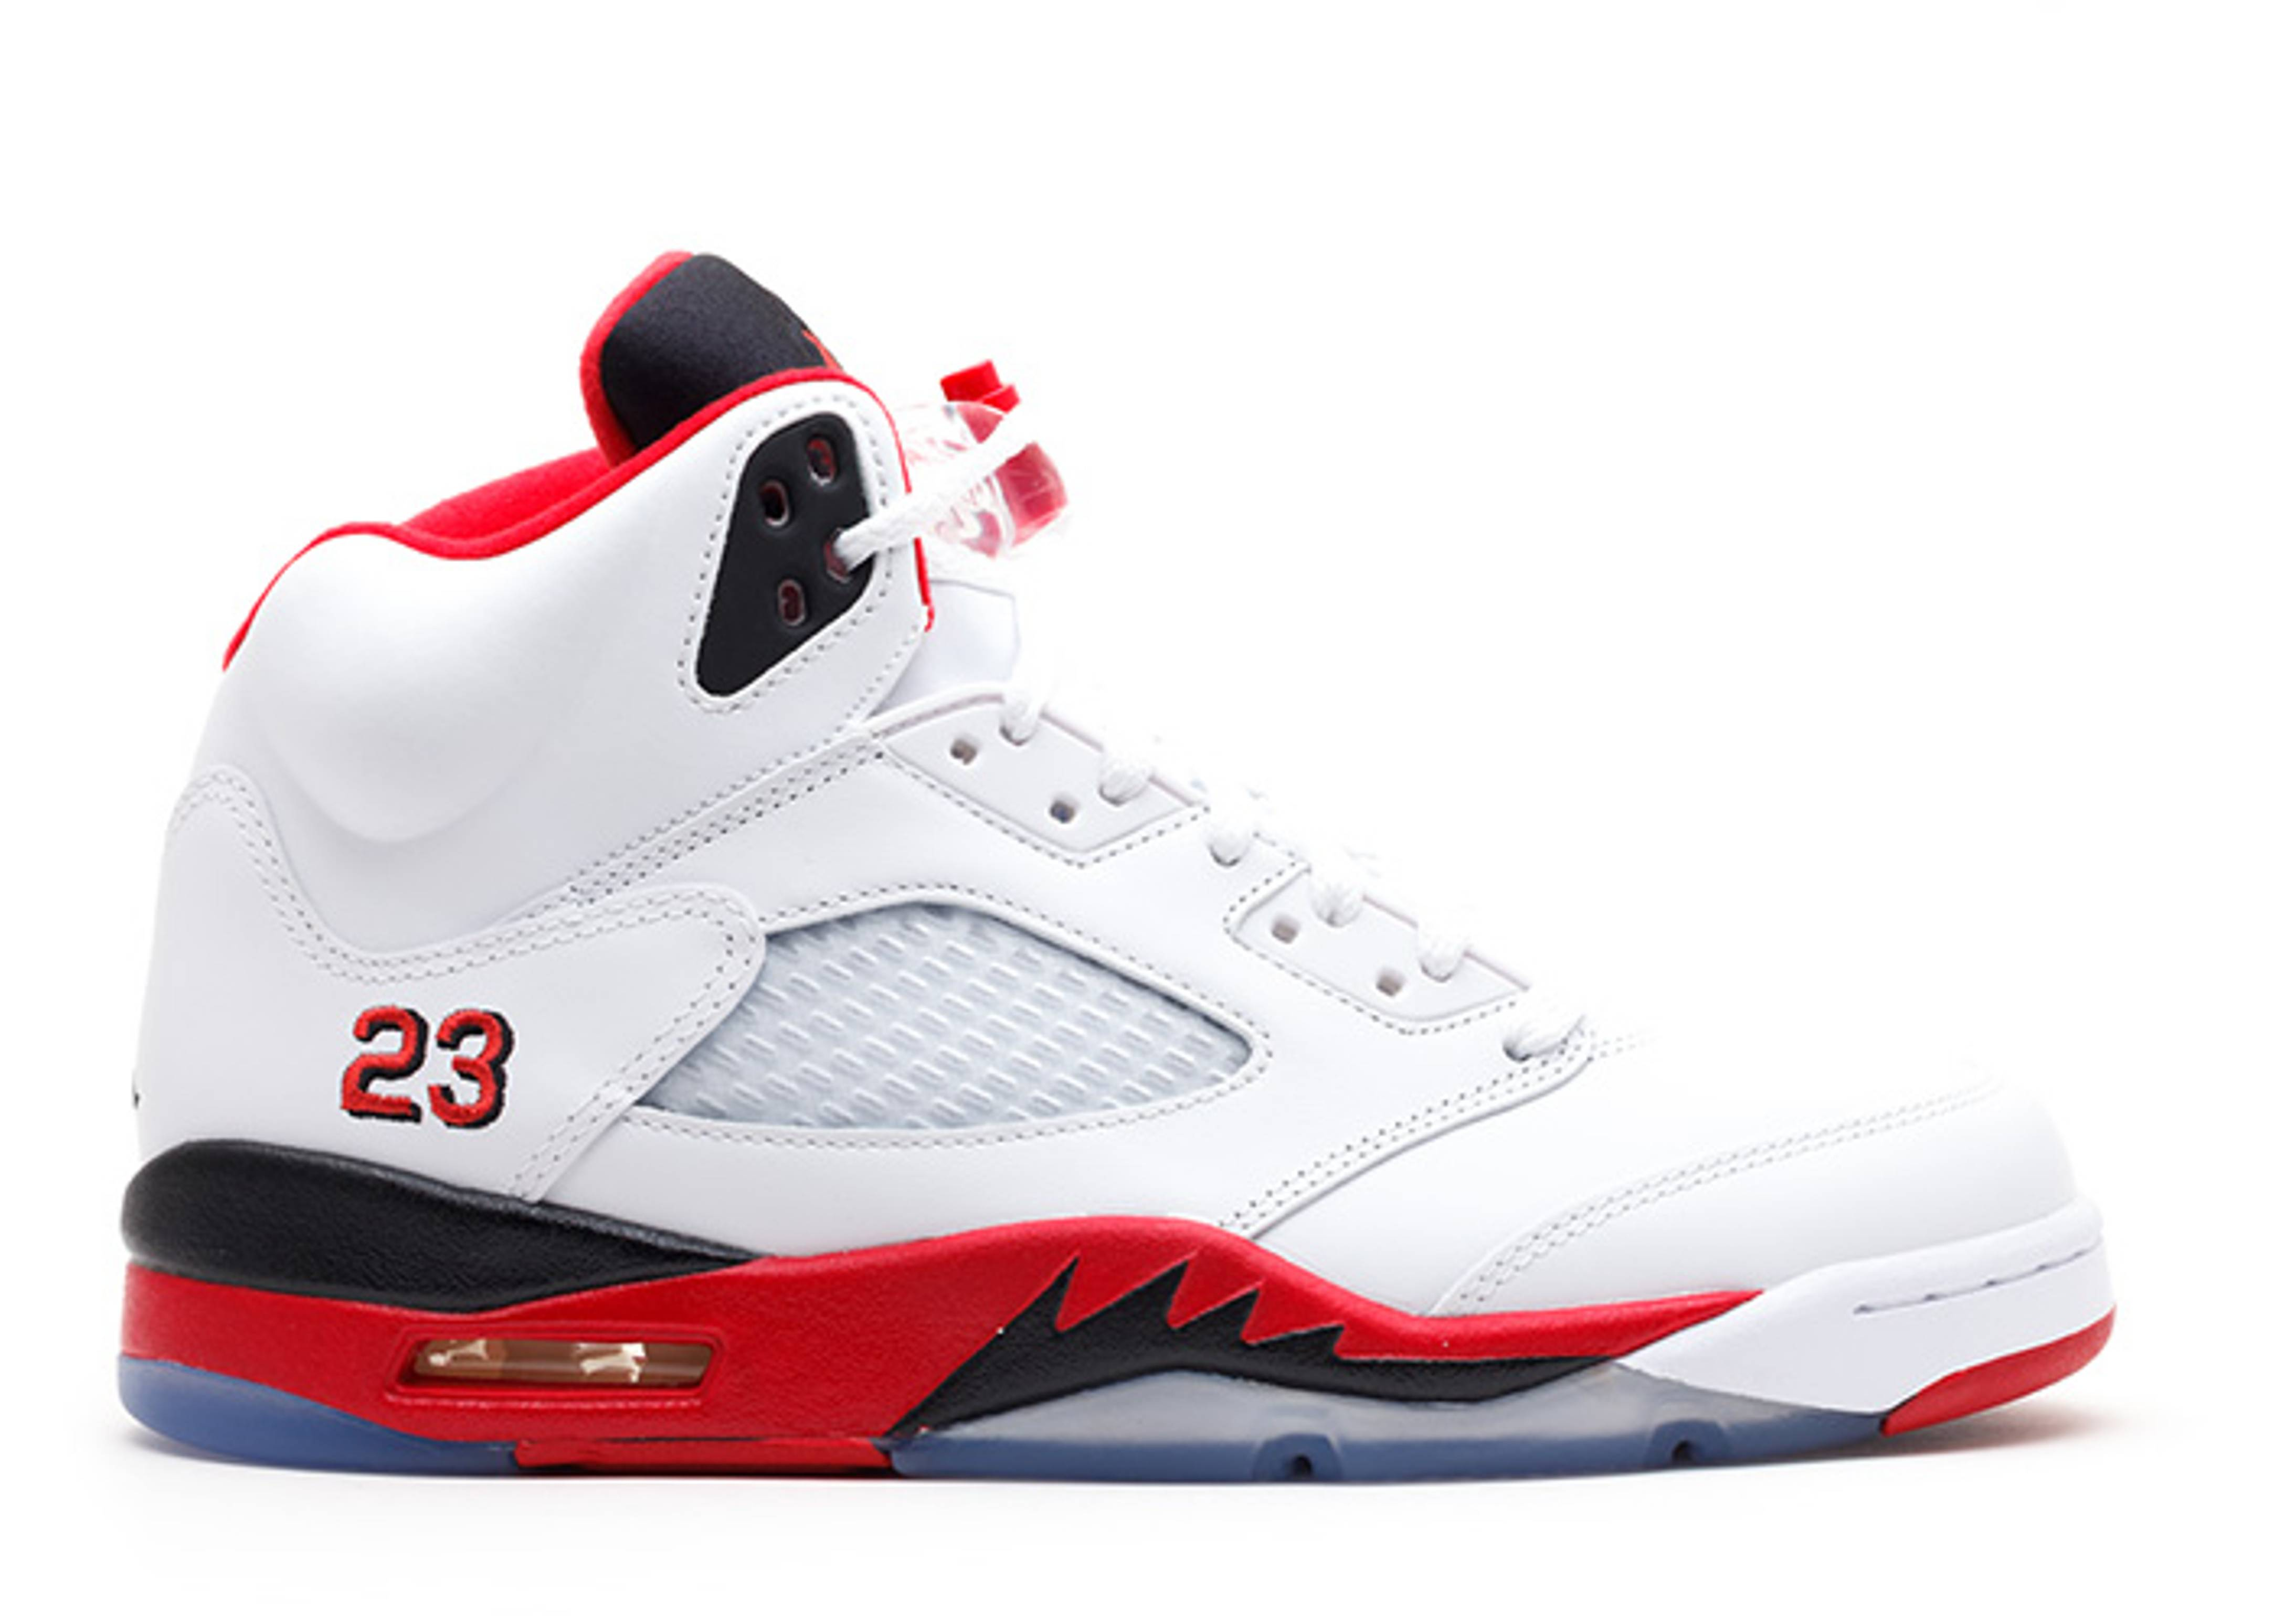 f6b3d350900 Air Jordan 5 Retro 'Fire Red' 2013